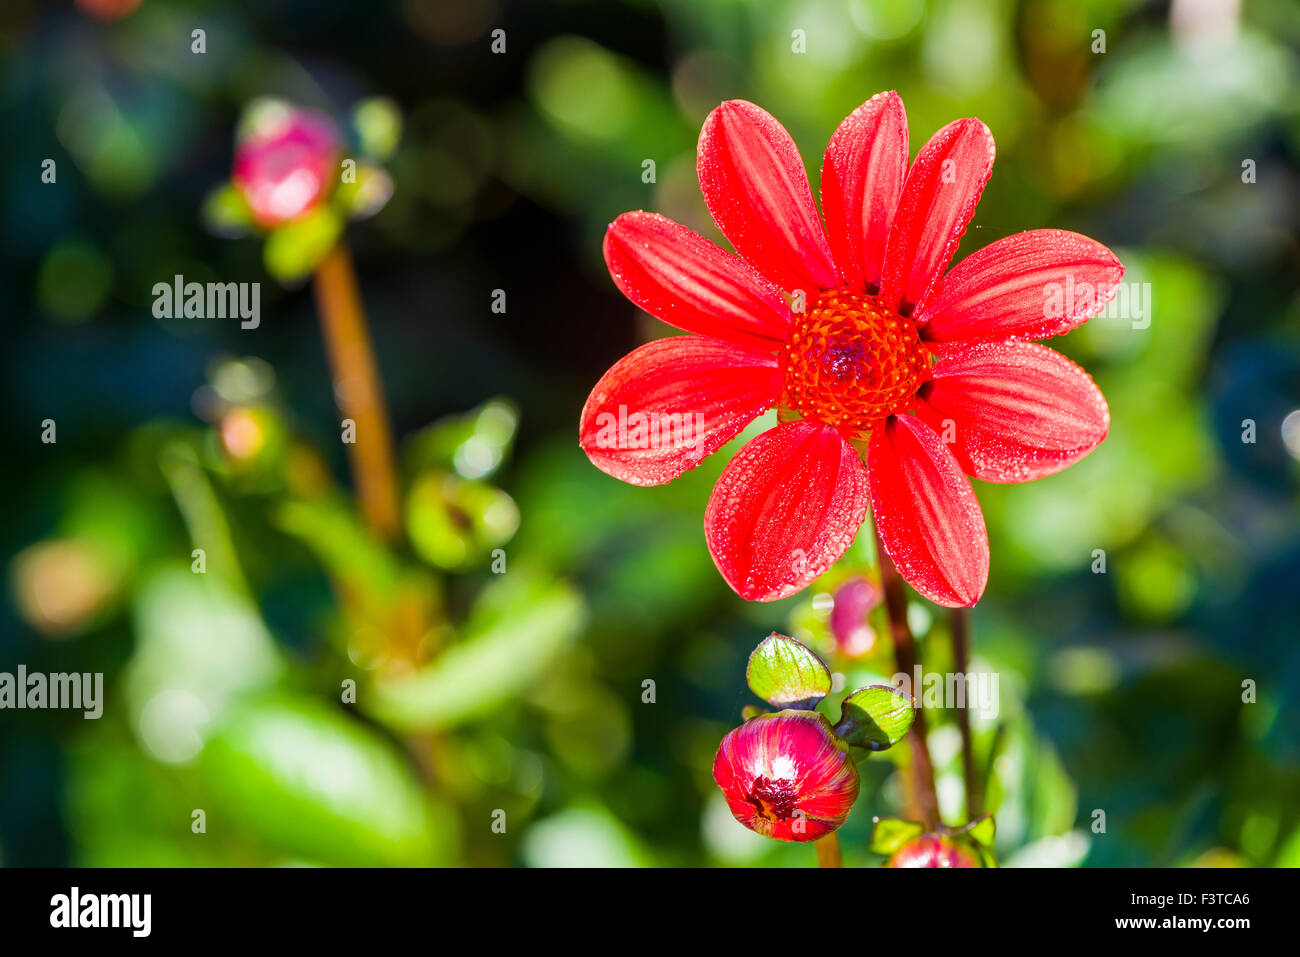 The flower in blossom of a dahlia named bali stock photo 88432350 the flower in blossom of a dahlia named bali izmirmasajfo